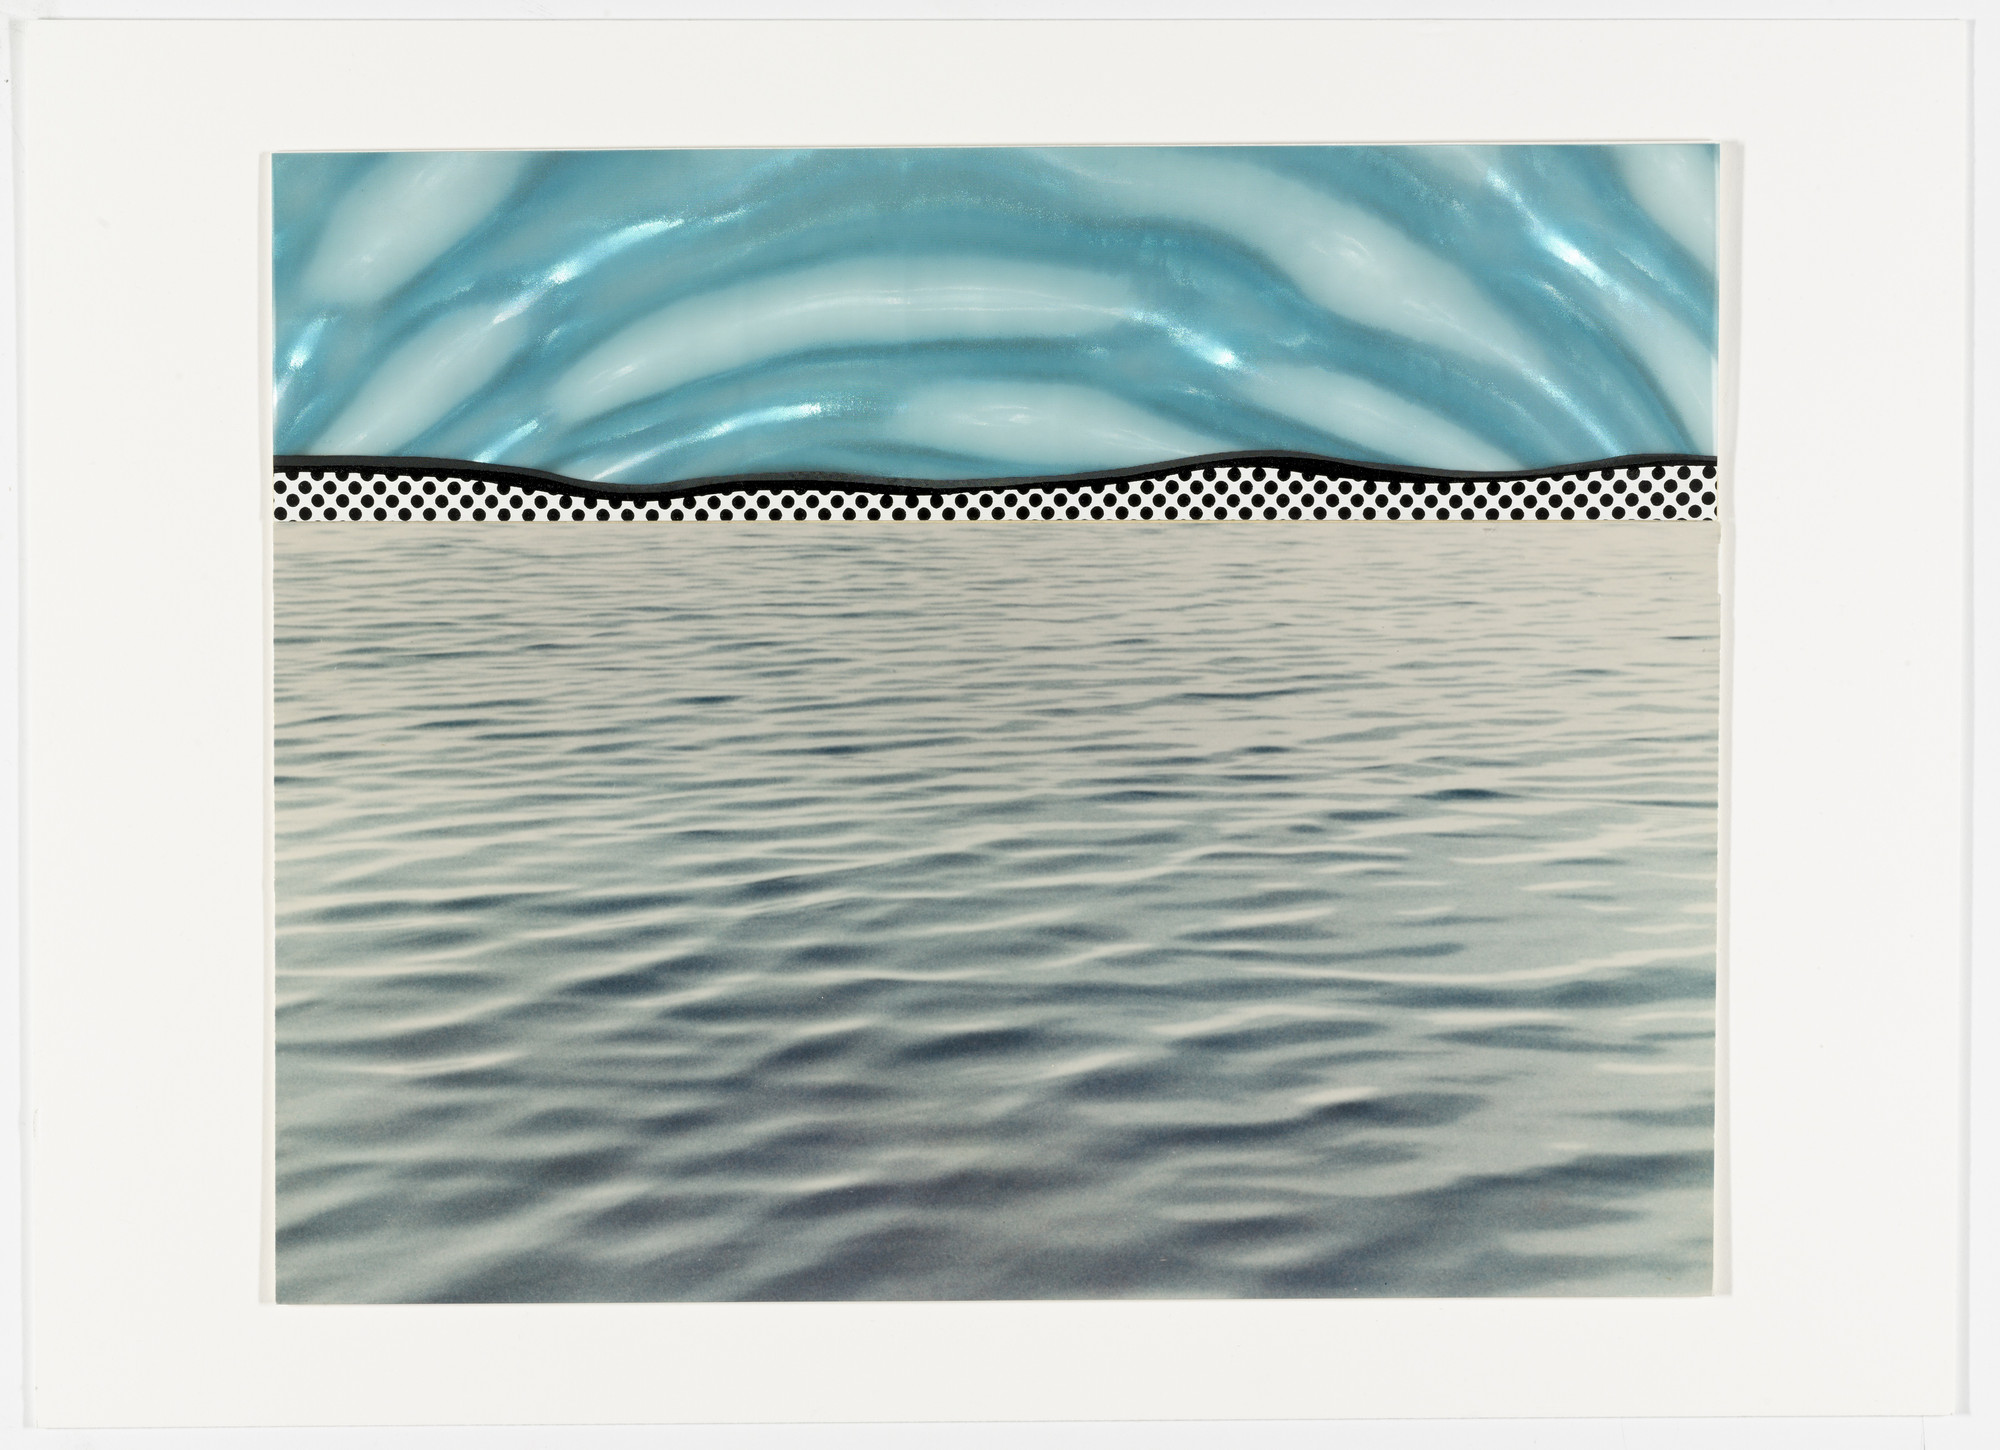 Roy Lichtenstein. Landscape 6 from Ten Landscapes. 1967